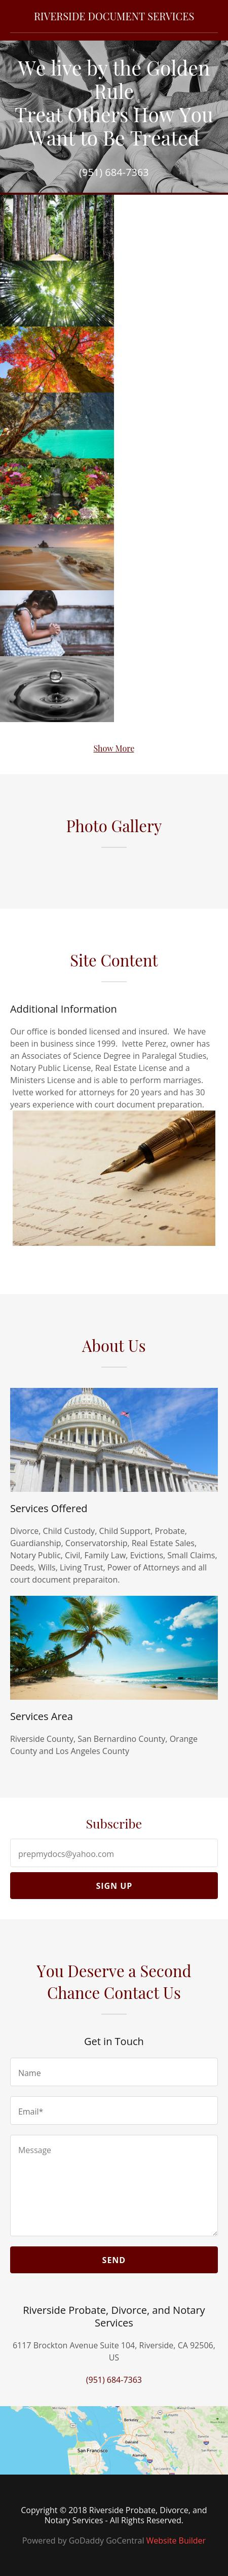 RiversideDocument Services - Riverside CA Lawyers